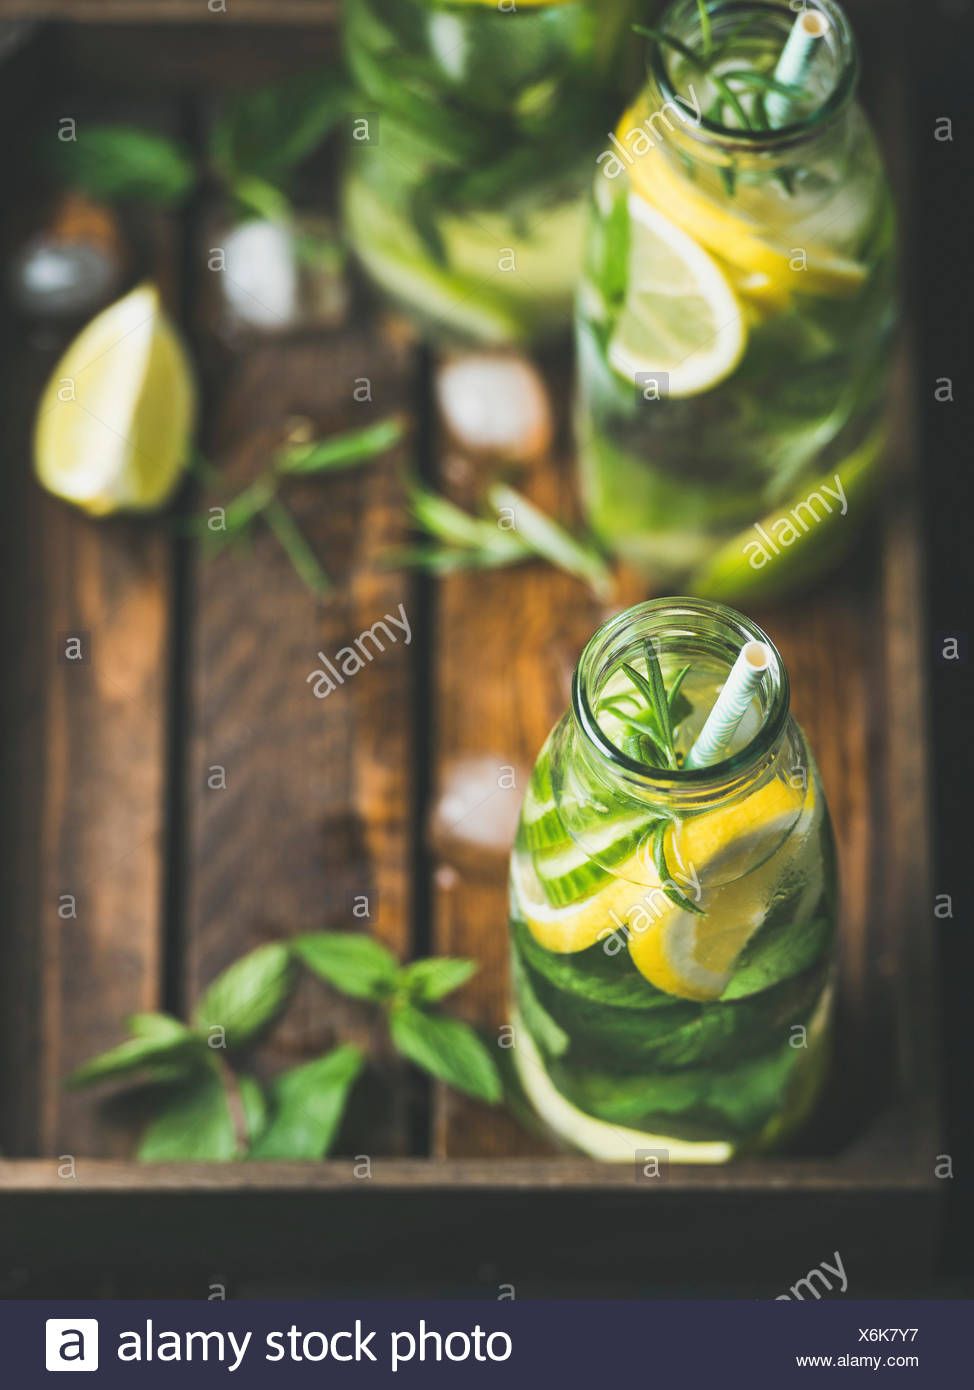 Citrus fruit and herbs infused sassi water for detox, healthy eating, dieting in glass bottles in wooden tray, selective focus, copy space. Clean eati - Stock Image